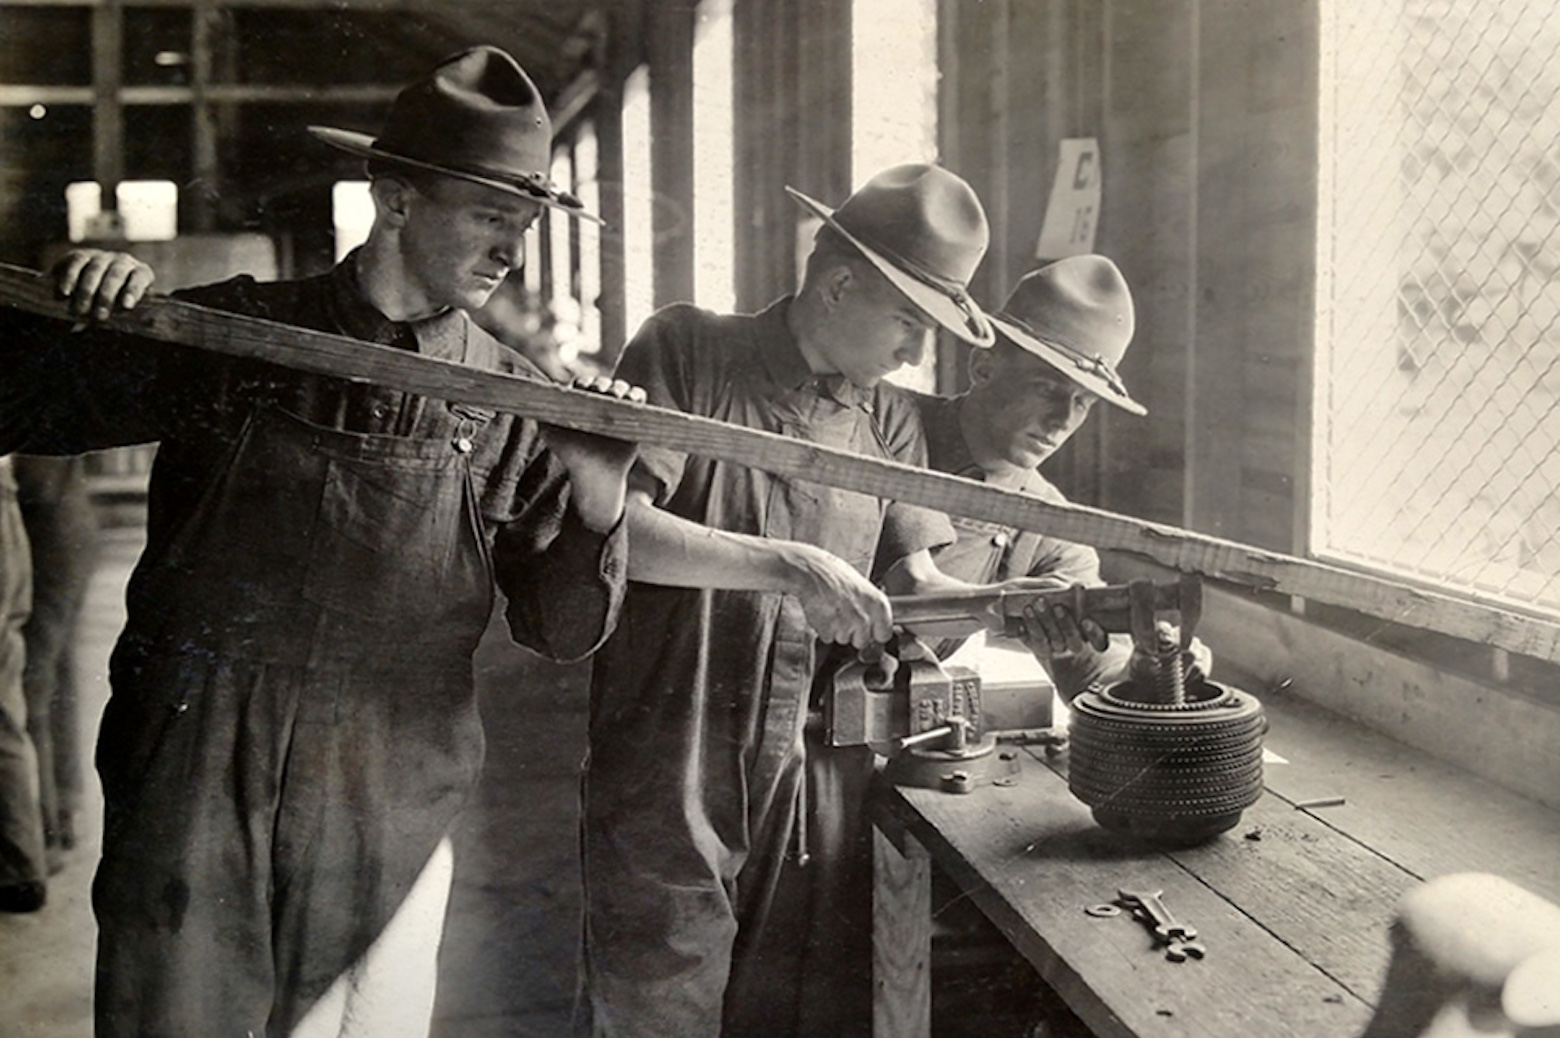 3 men working in workshop